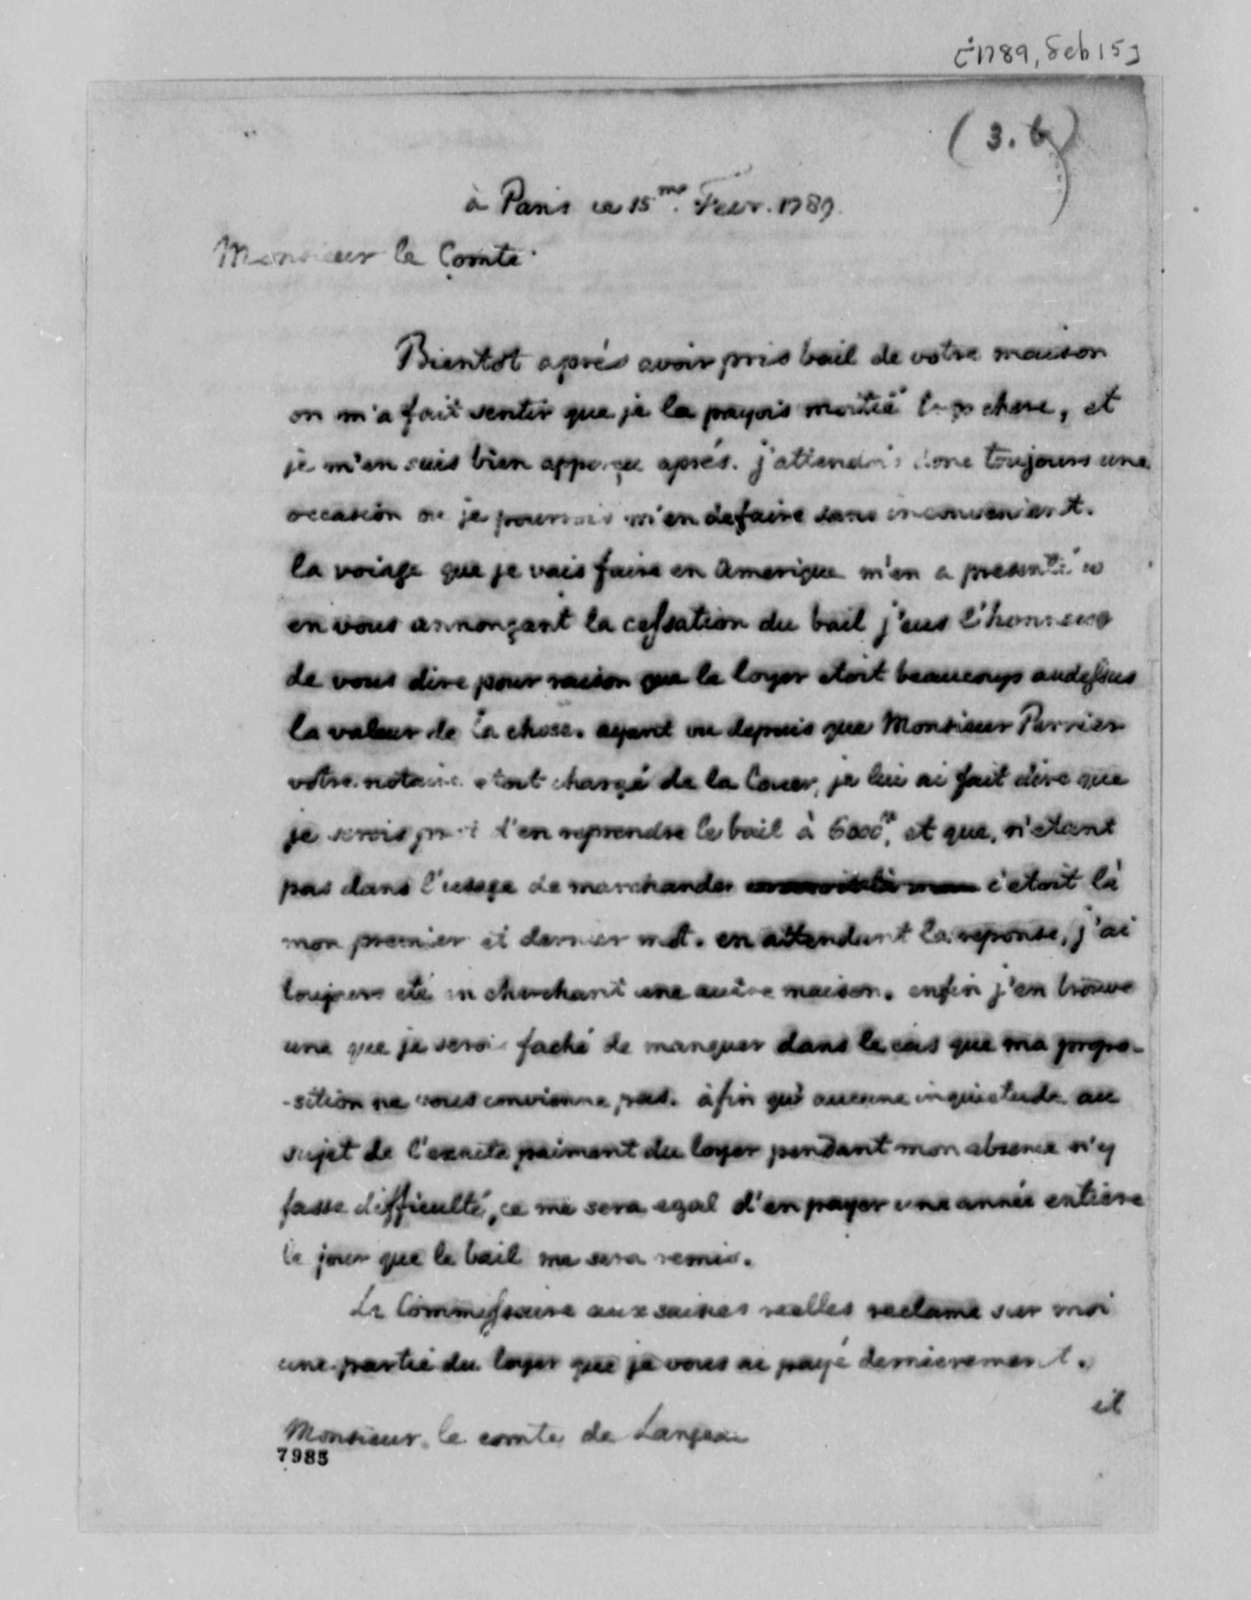 Thomas Jefferson to Count de Langeac, February 15, 1789, in French